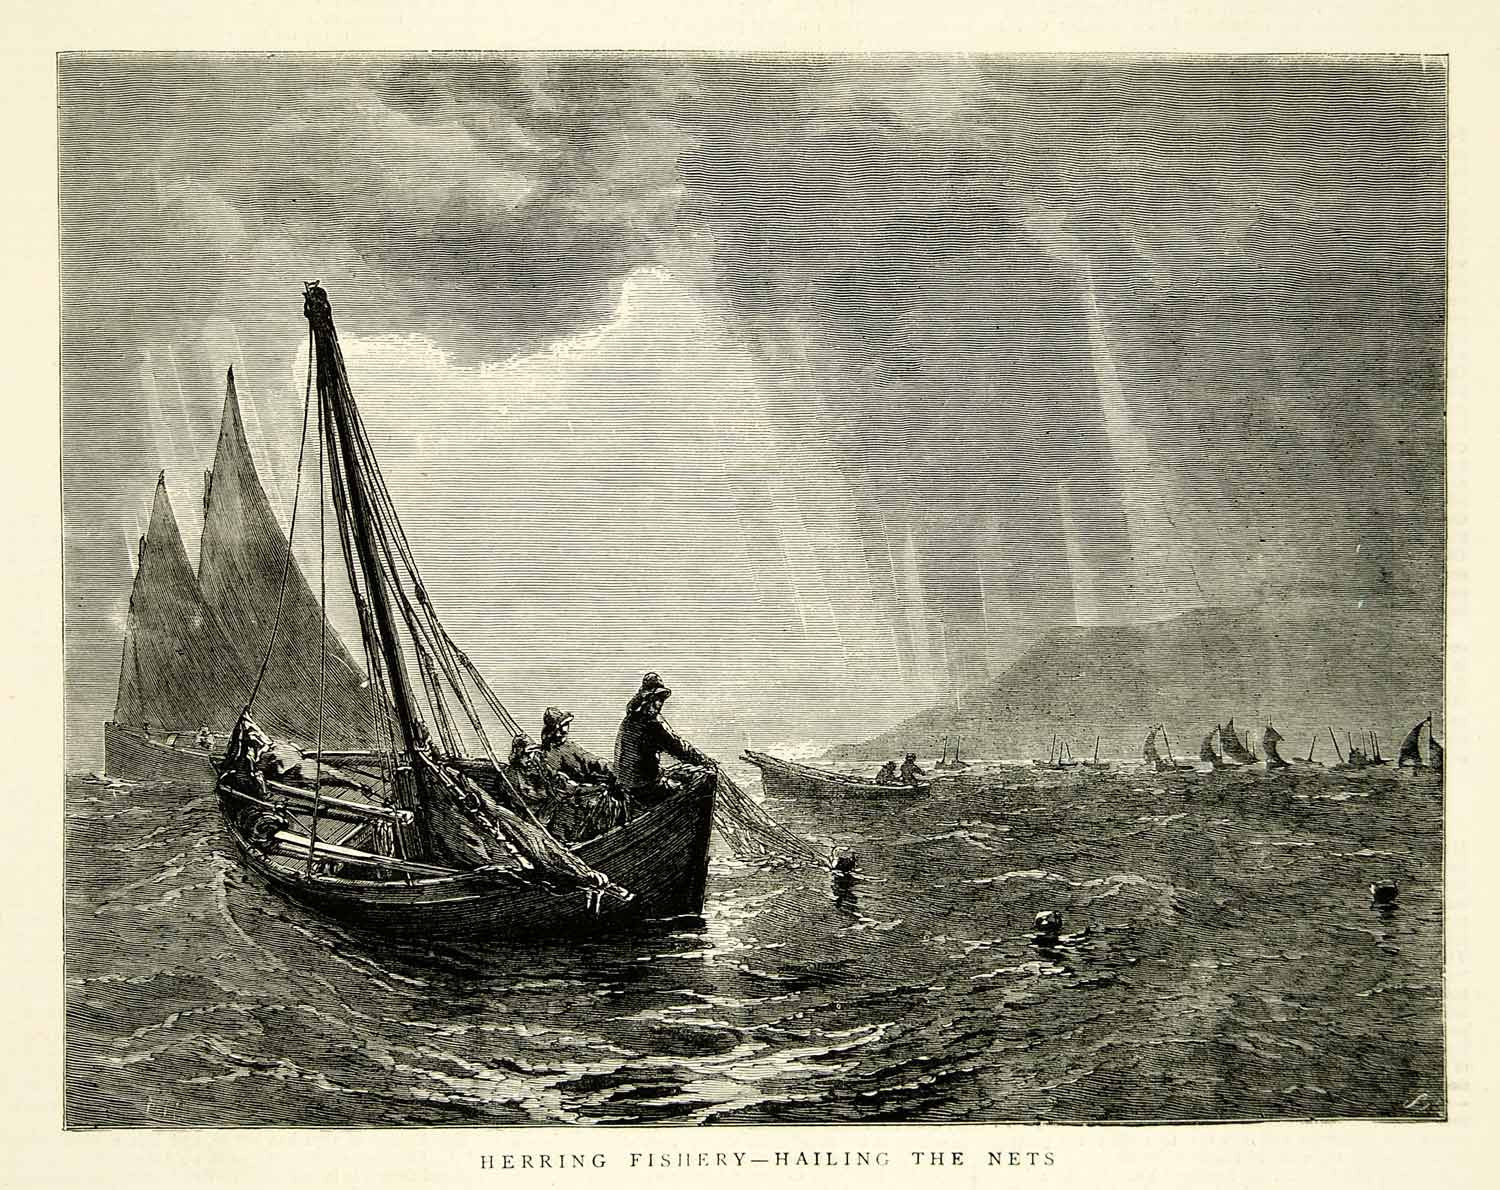 1871 Wood Engraving Art Herring Fishing Boat Hailing Nets Waves Tarbert YTG2 - Period Paper